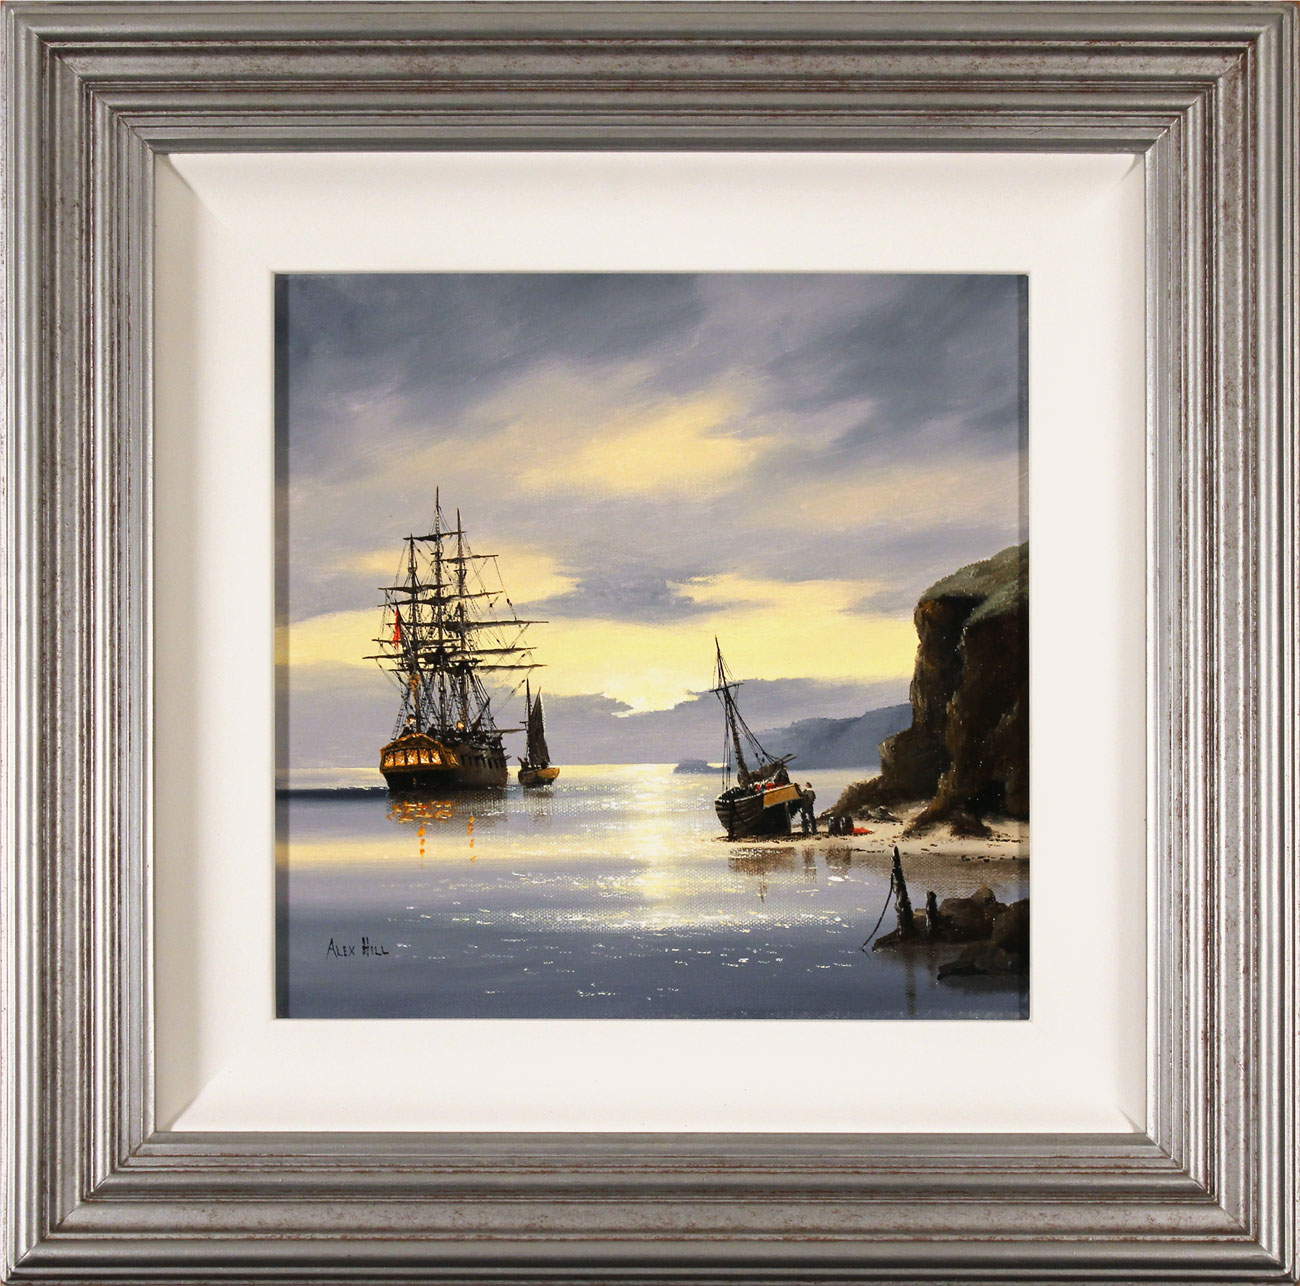 Alex Hill, Original oil painting on canvas, Sunrise Smugglers. Click to enlarge